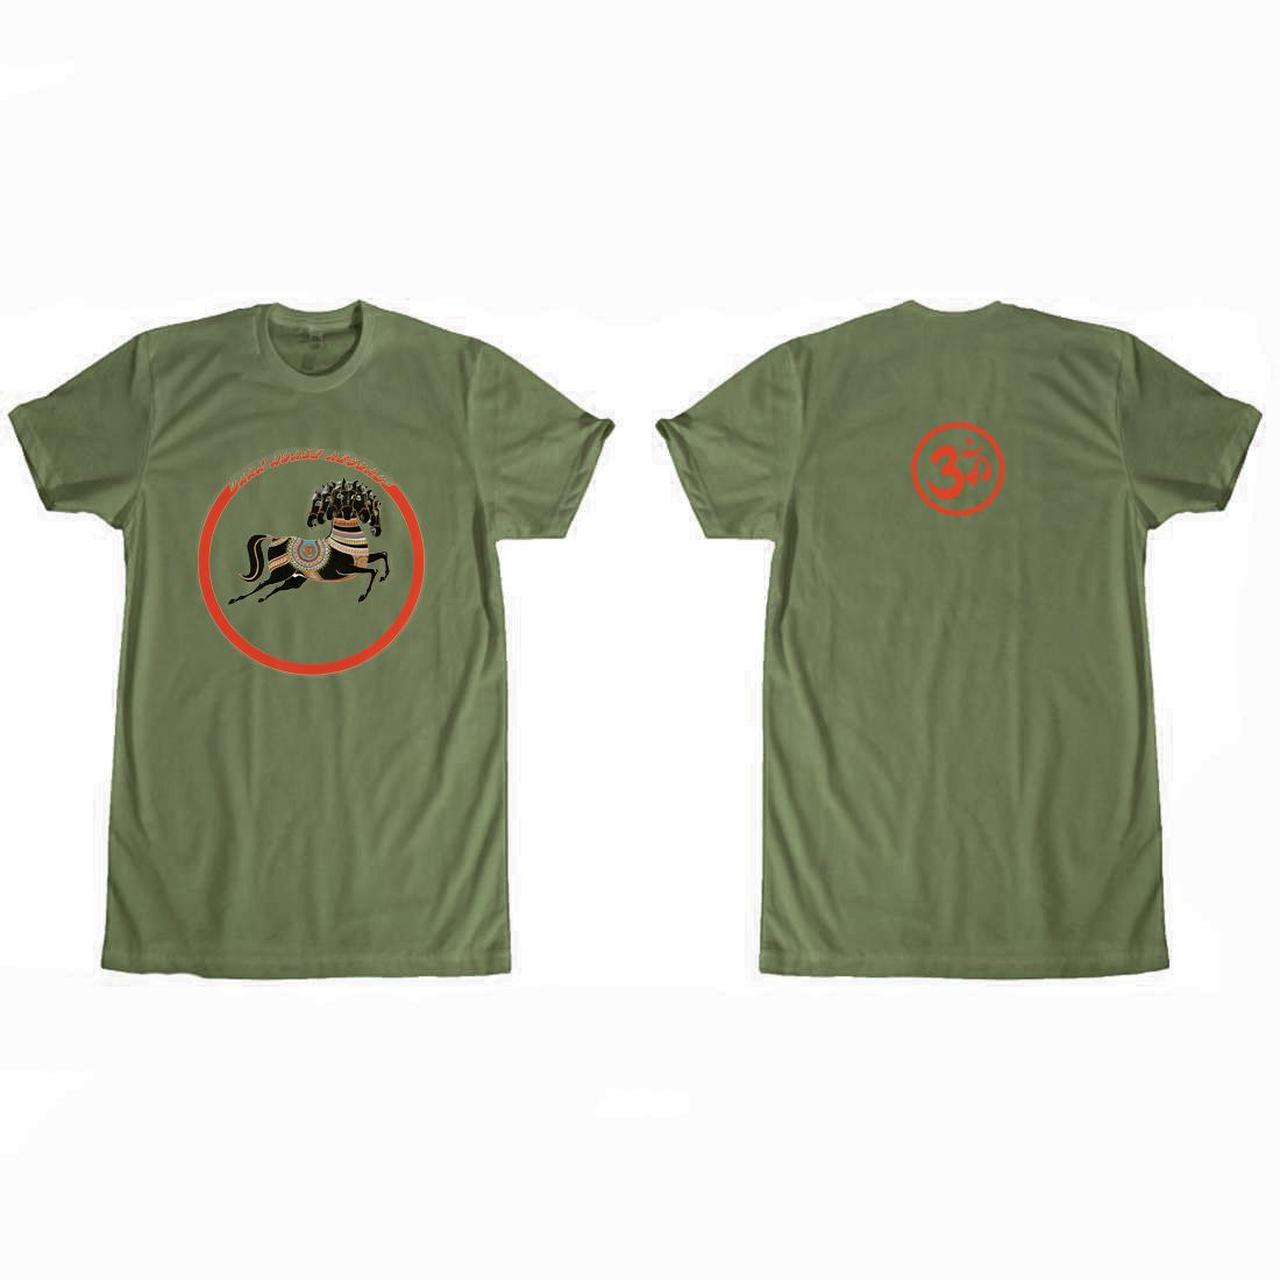 George Harrison Dark Horse Records Logo (Olive) T-Shirt 5173f822089